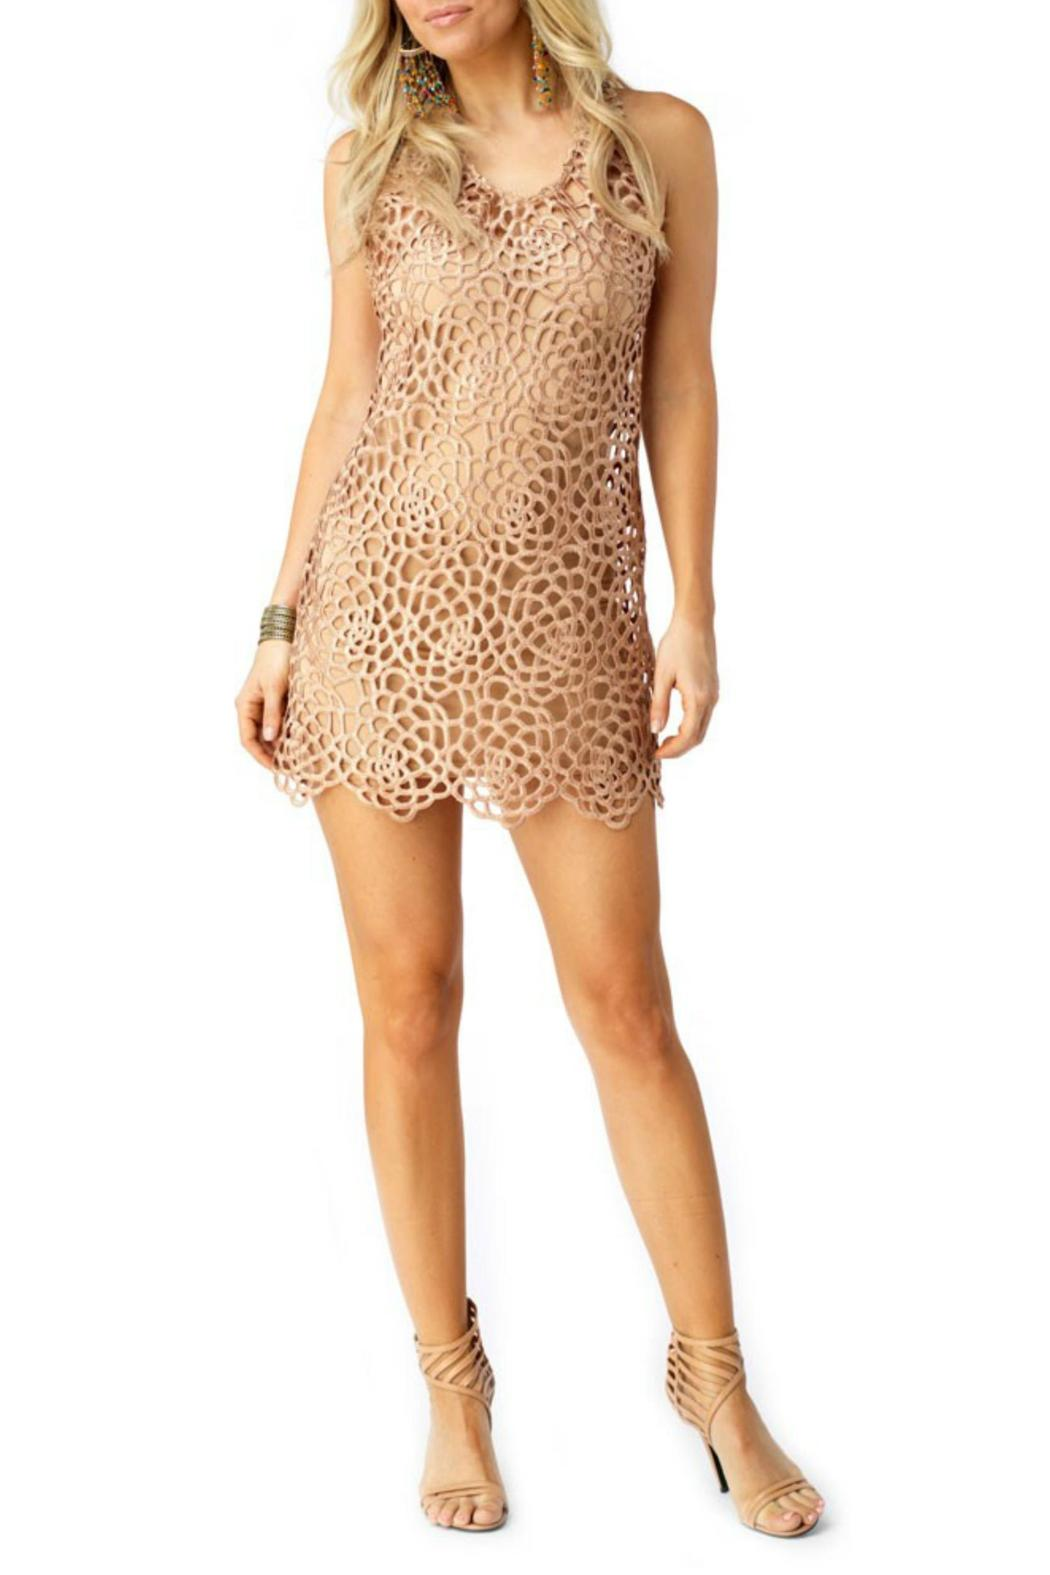 Sky Collection Ioannia Mini Dress - Side Cropped Image